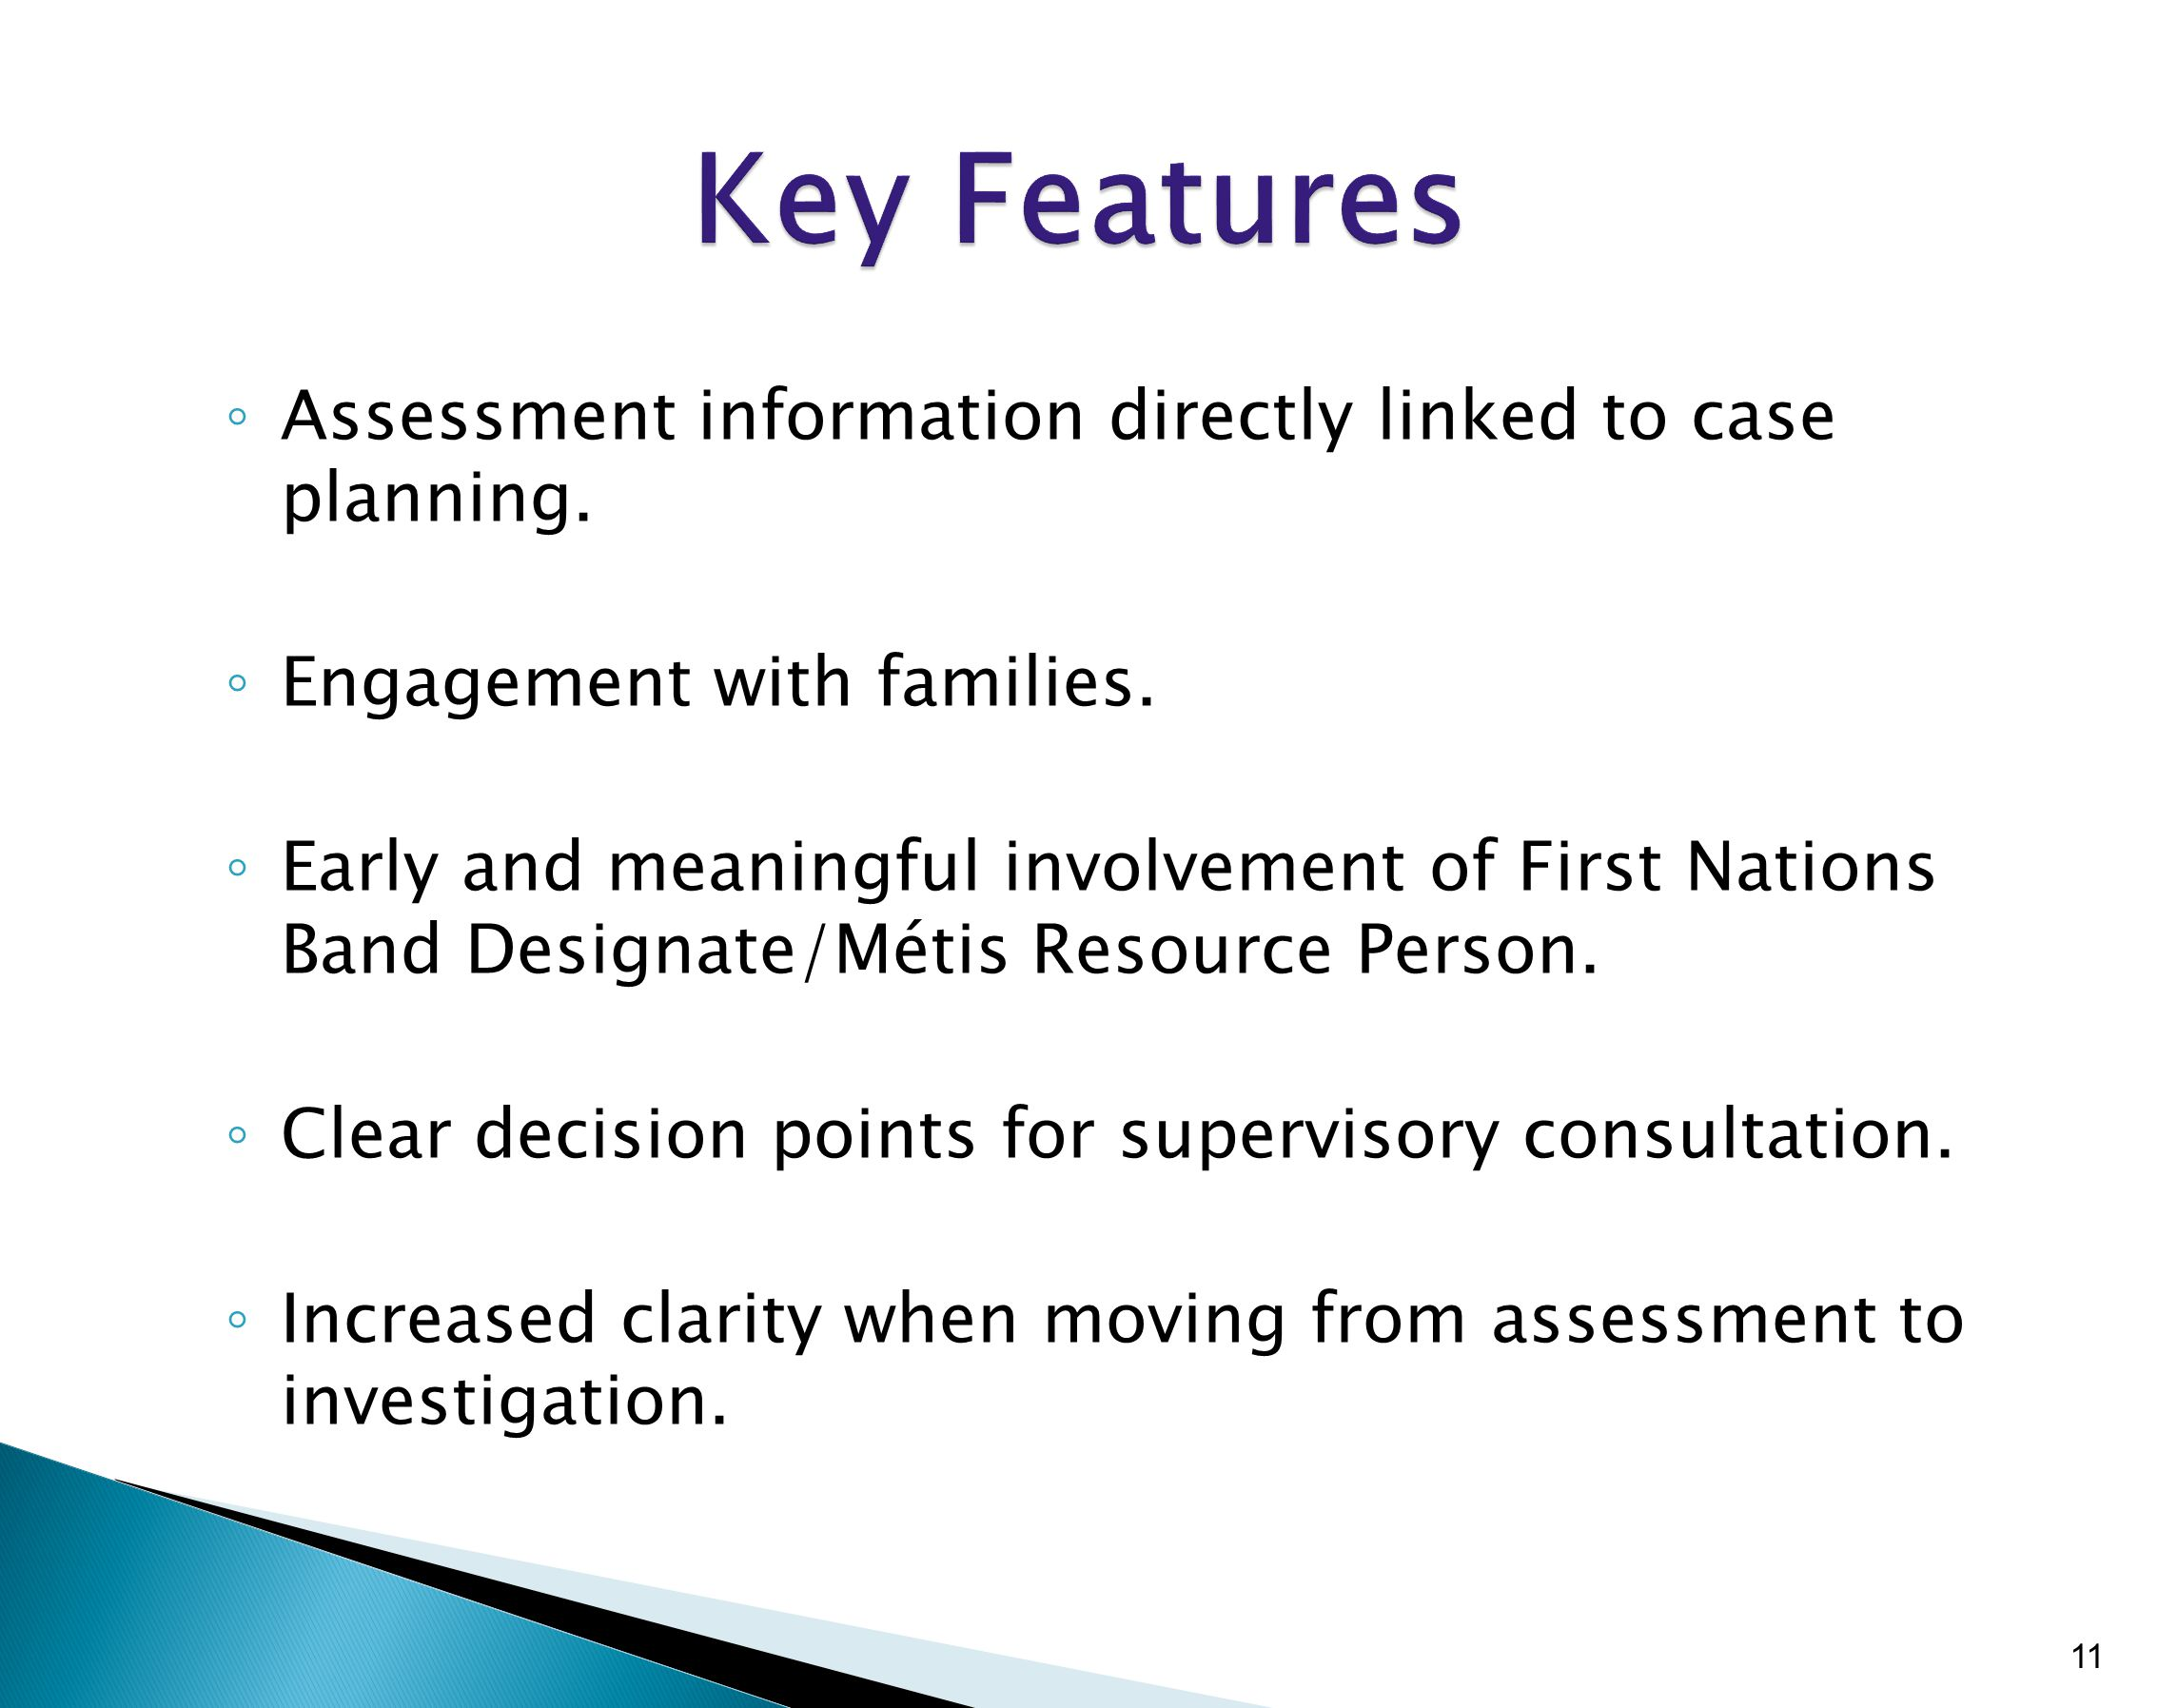 ◦ Assessment information directly linked to case planning.